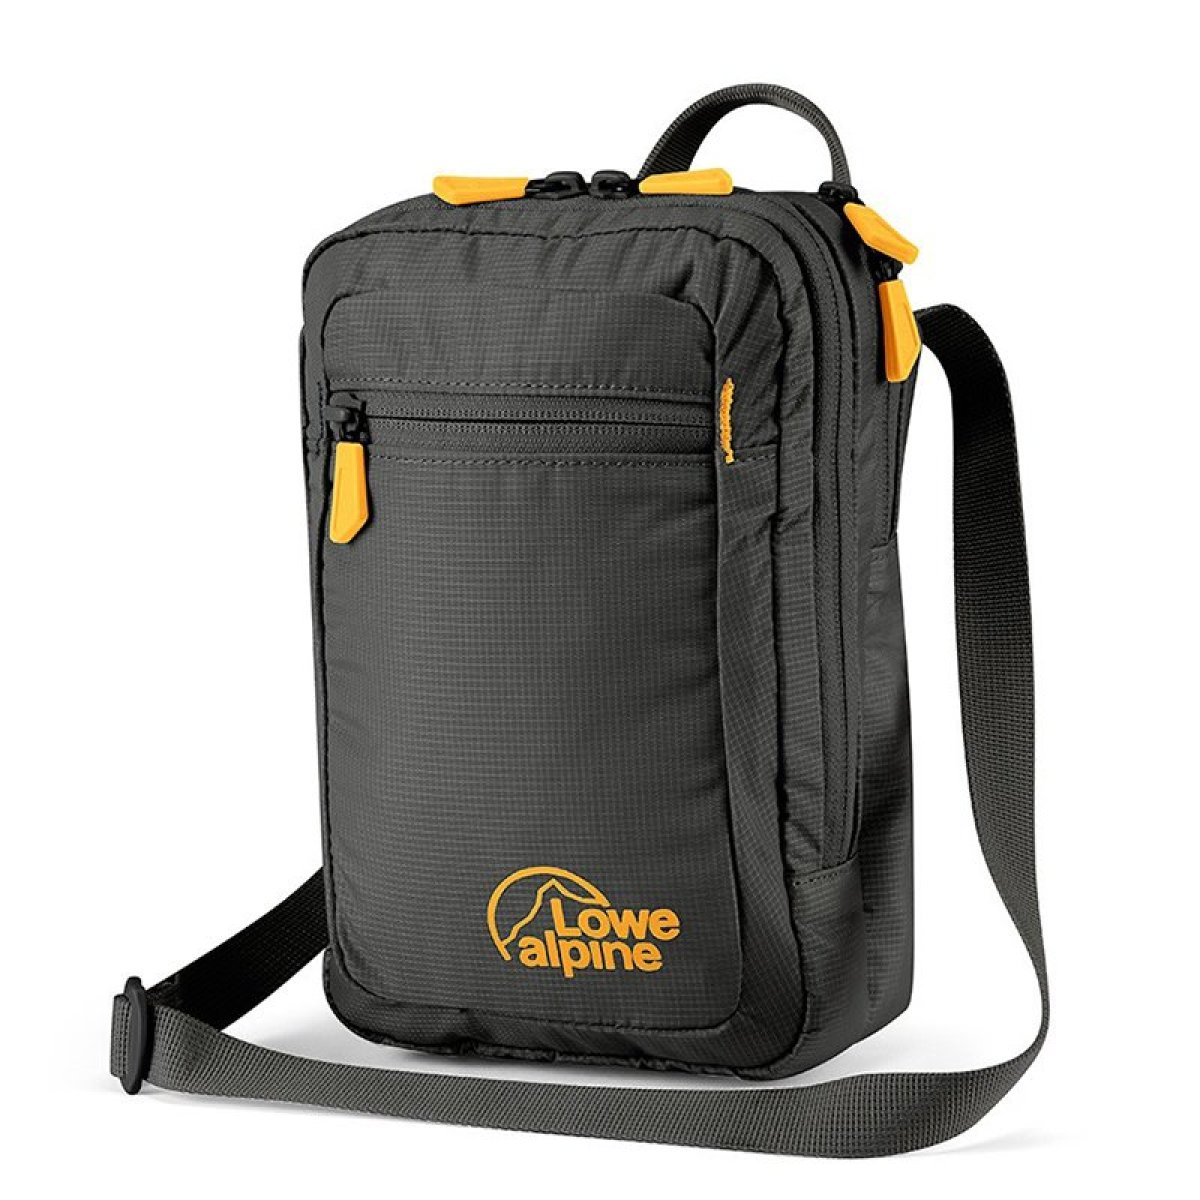 Сумка Lowe Alpine Flight Case Large для документов Anthacite/Amber, L LA FAD-98-AN-L